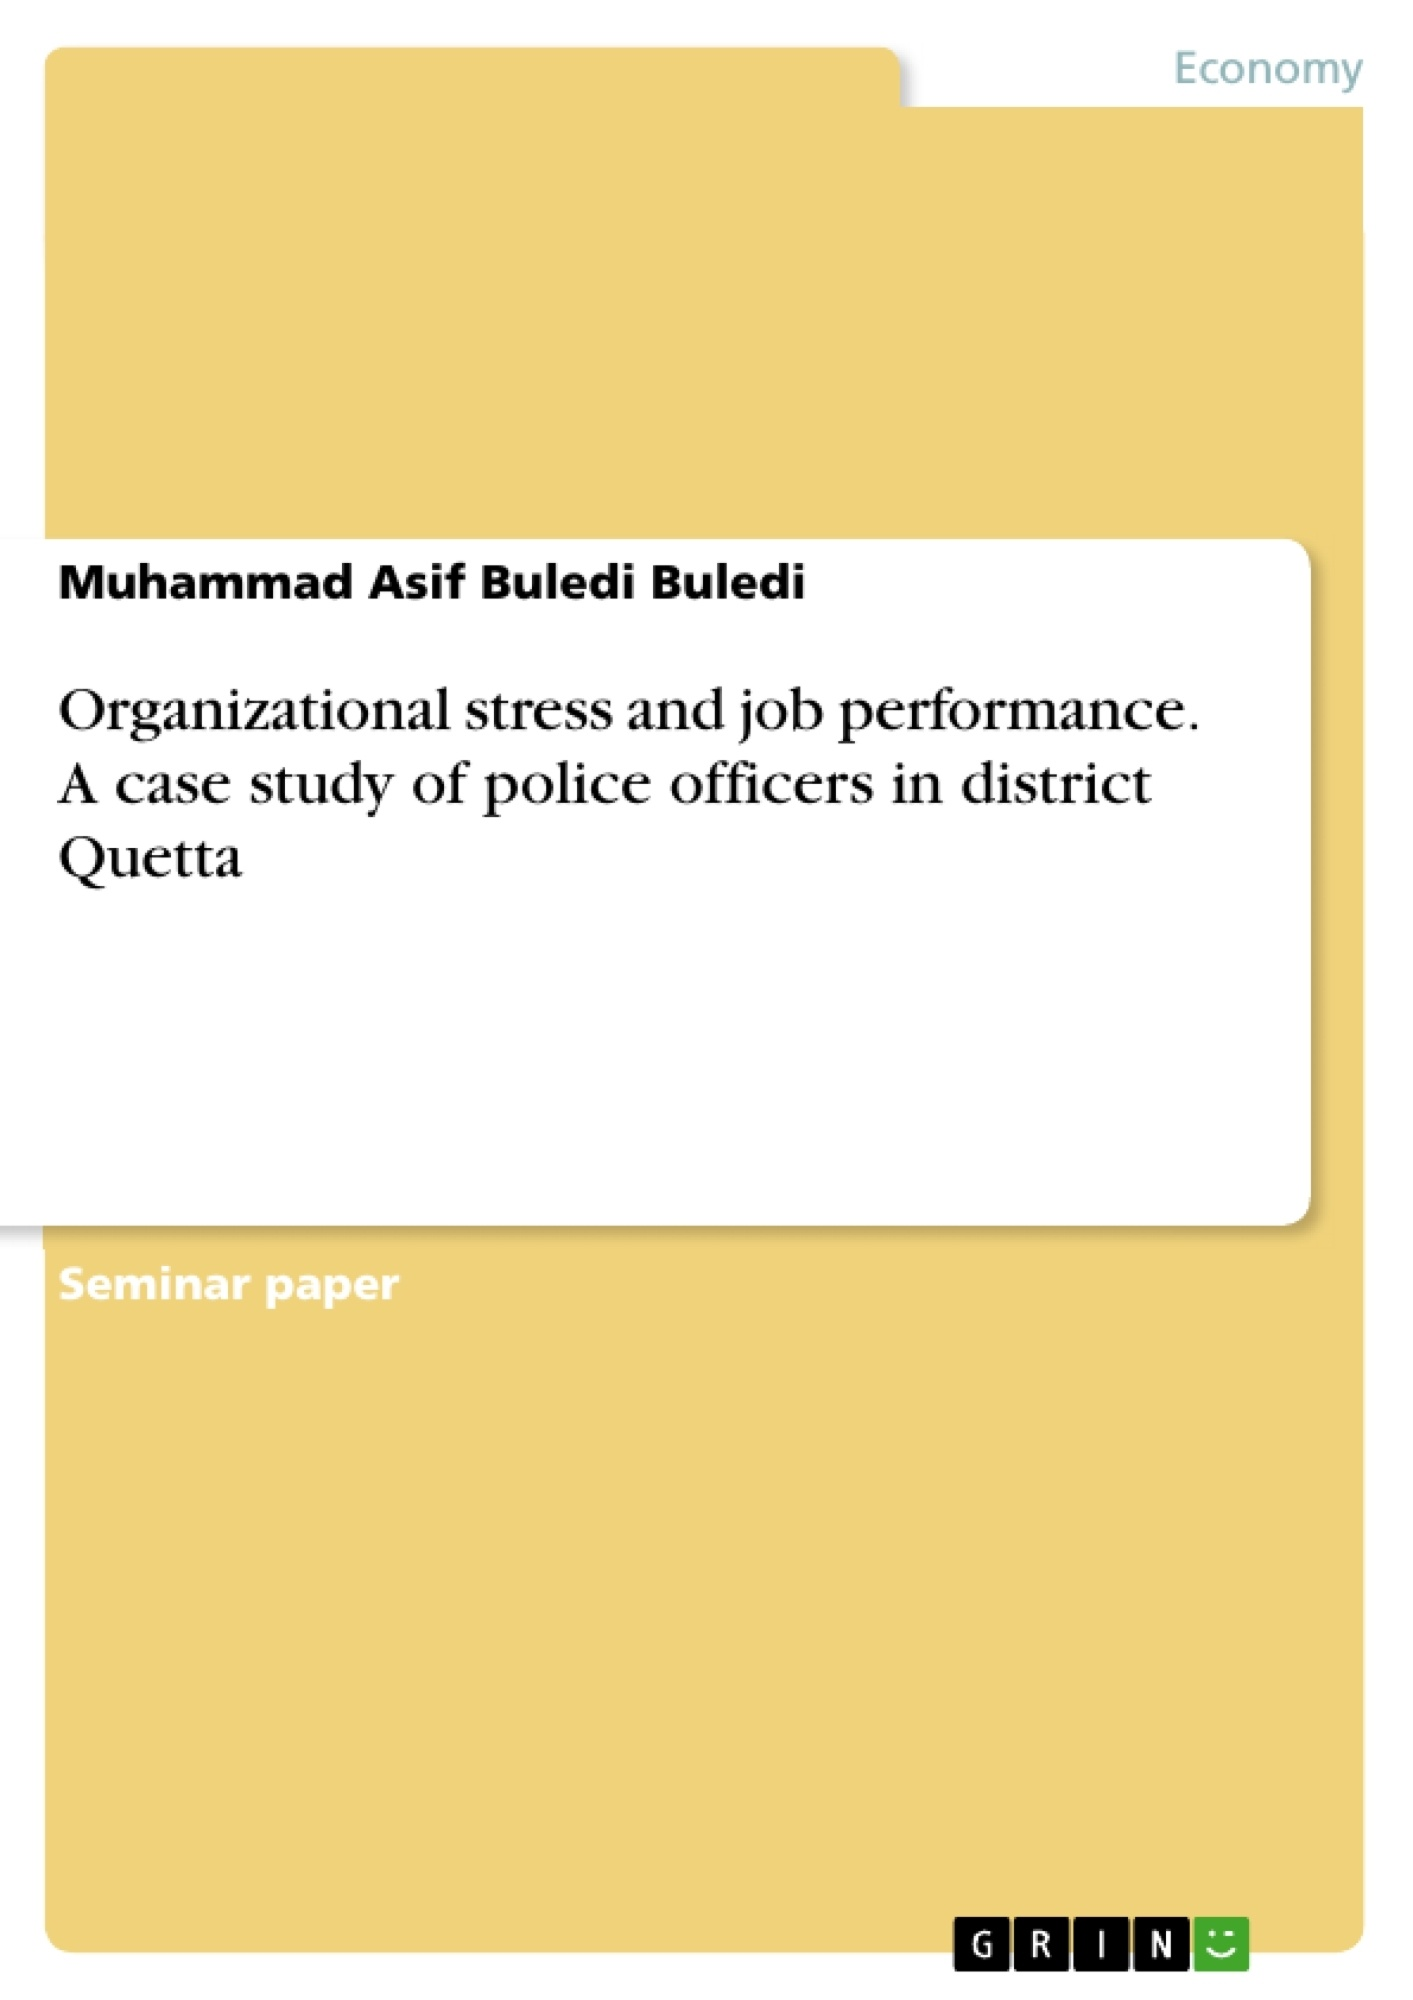 Title: Organizational stress and job performance. A case study of police officers in district Quetta